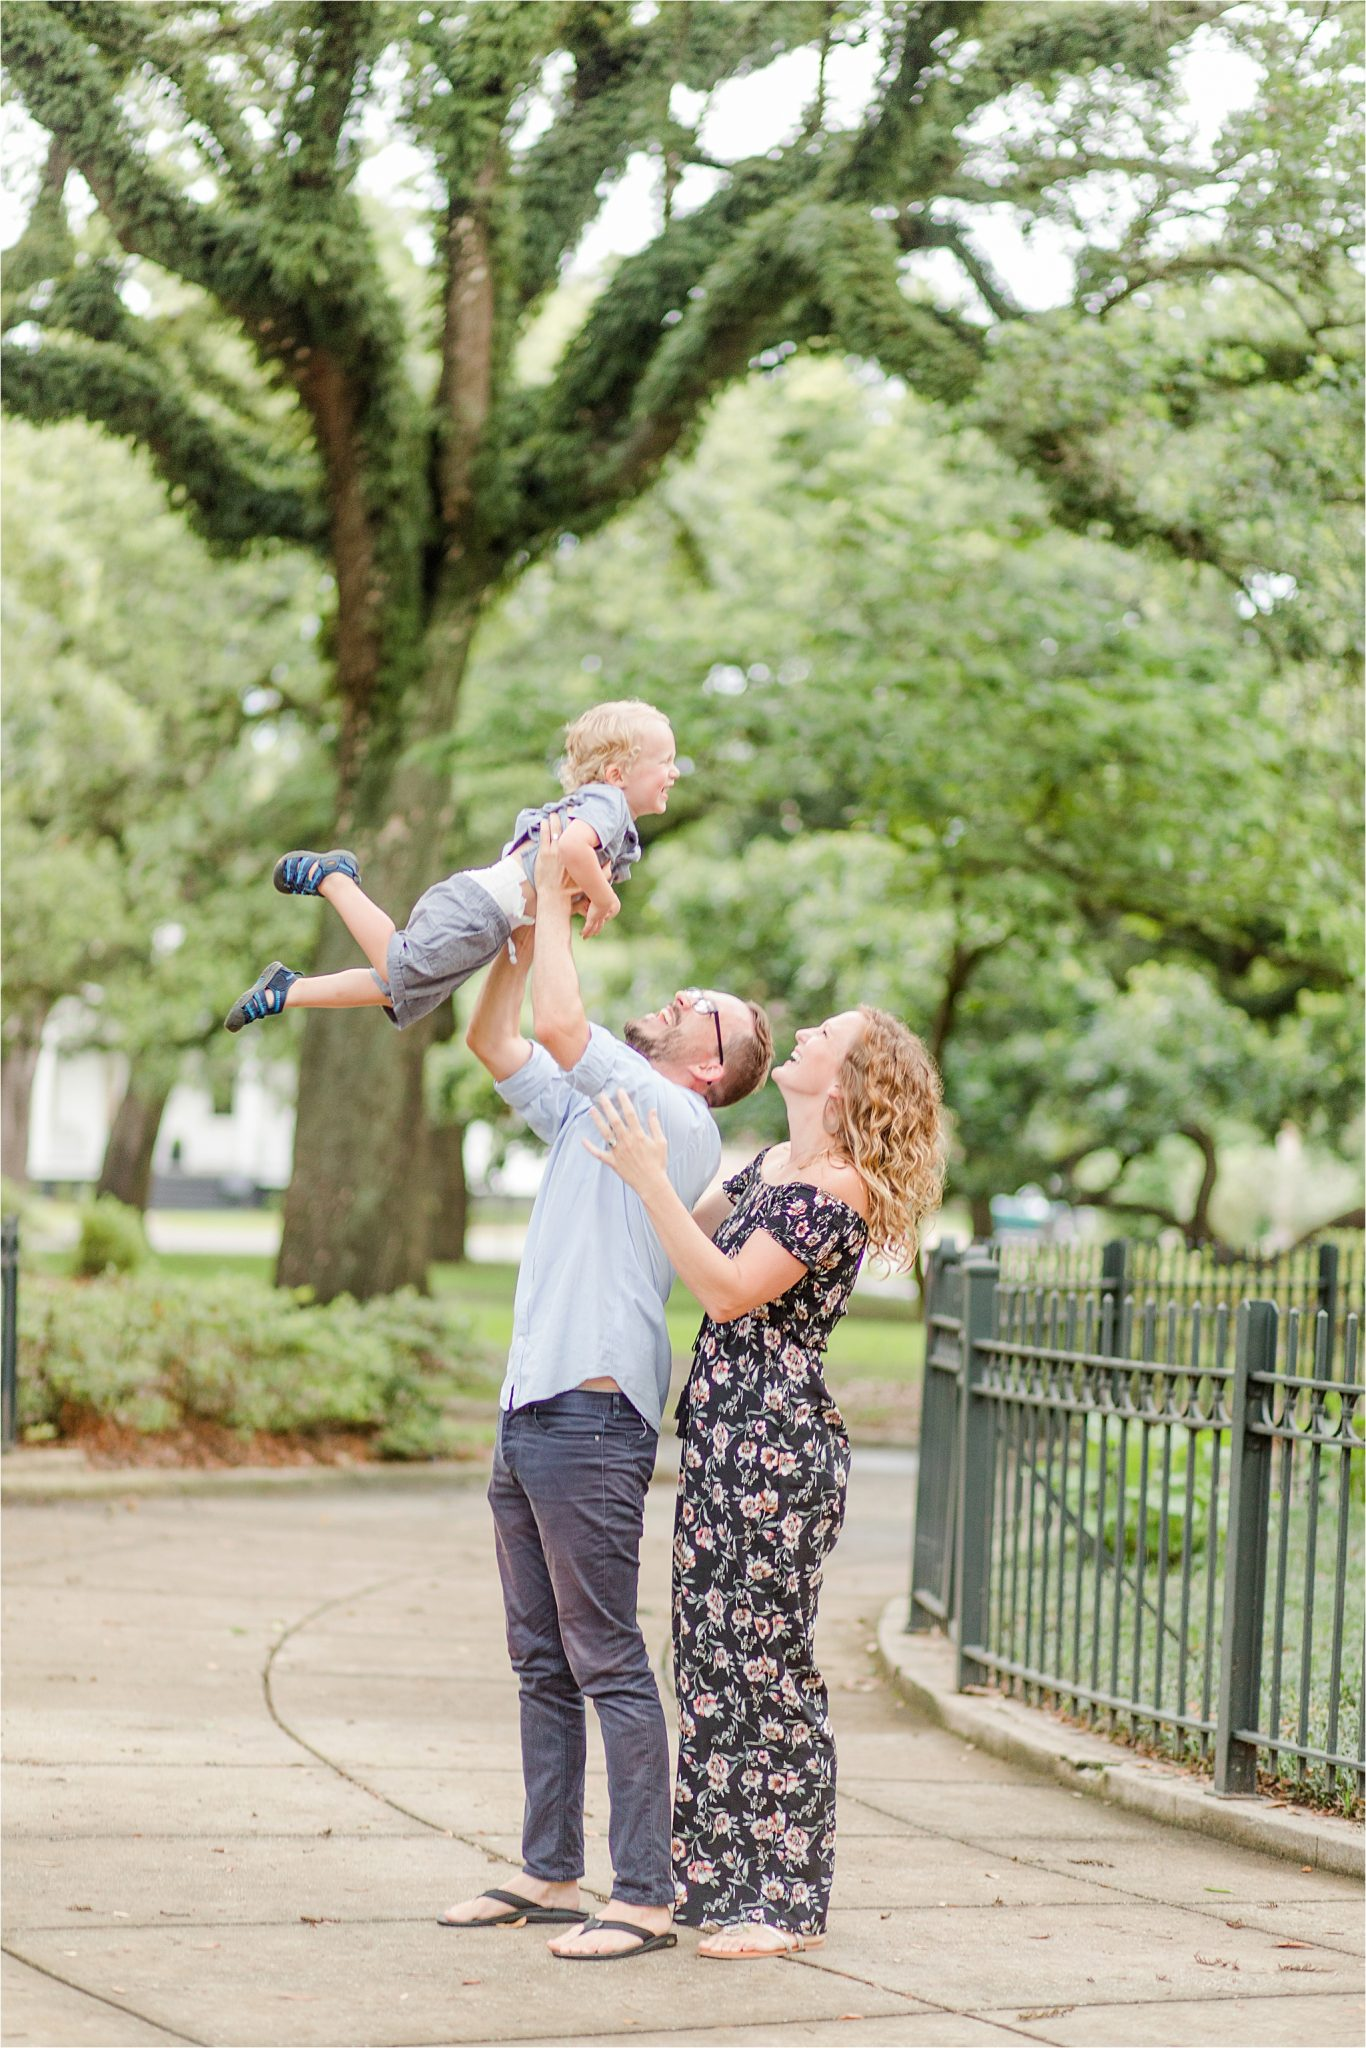 Washington Square Park Family Photography-Alabama family photographer-family of three-best Alabama family portrait locations-family photos